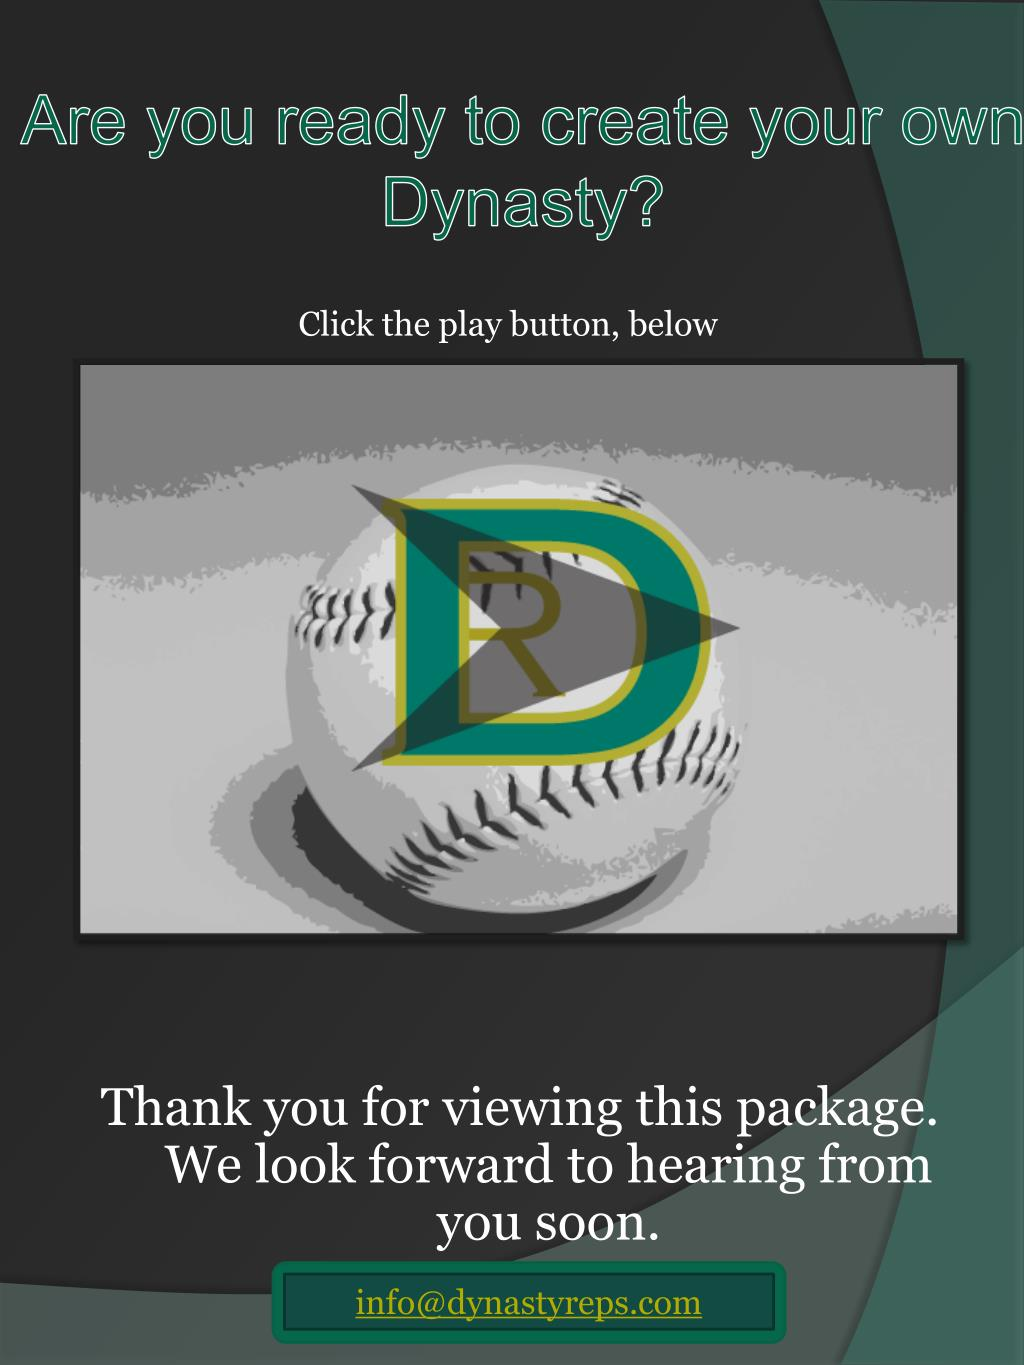 Are you ready to create your own Dynasty?